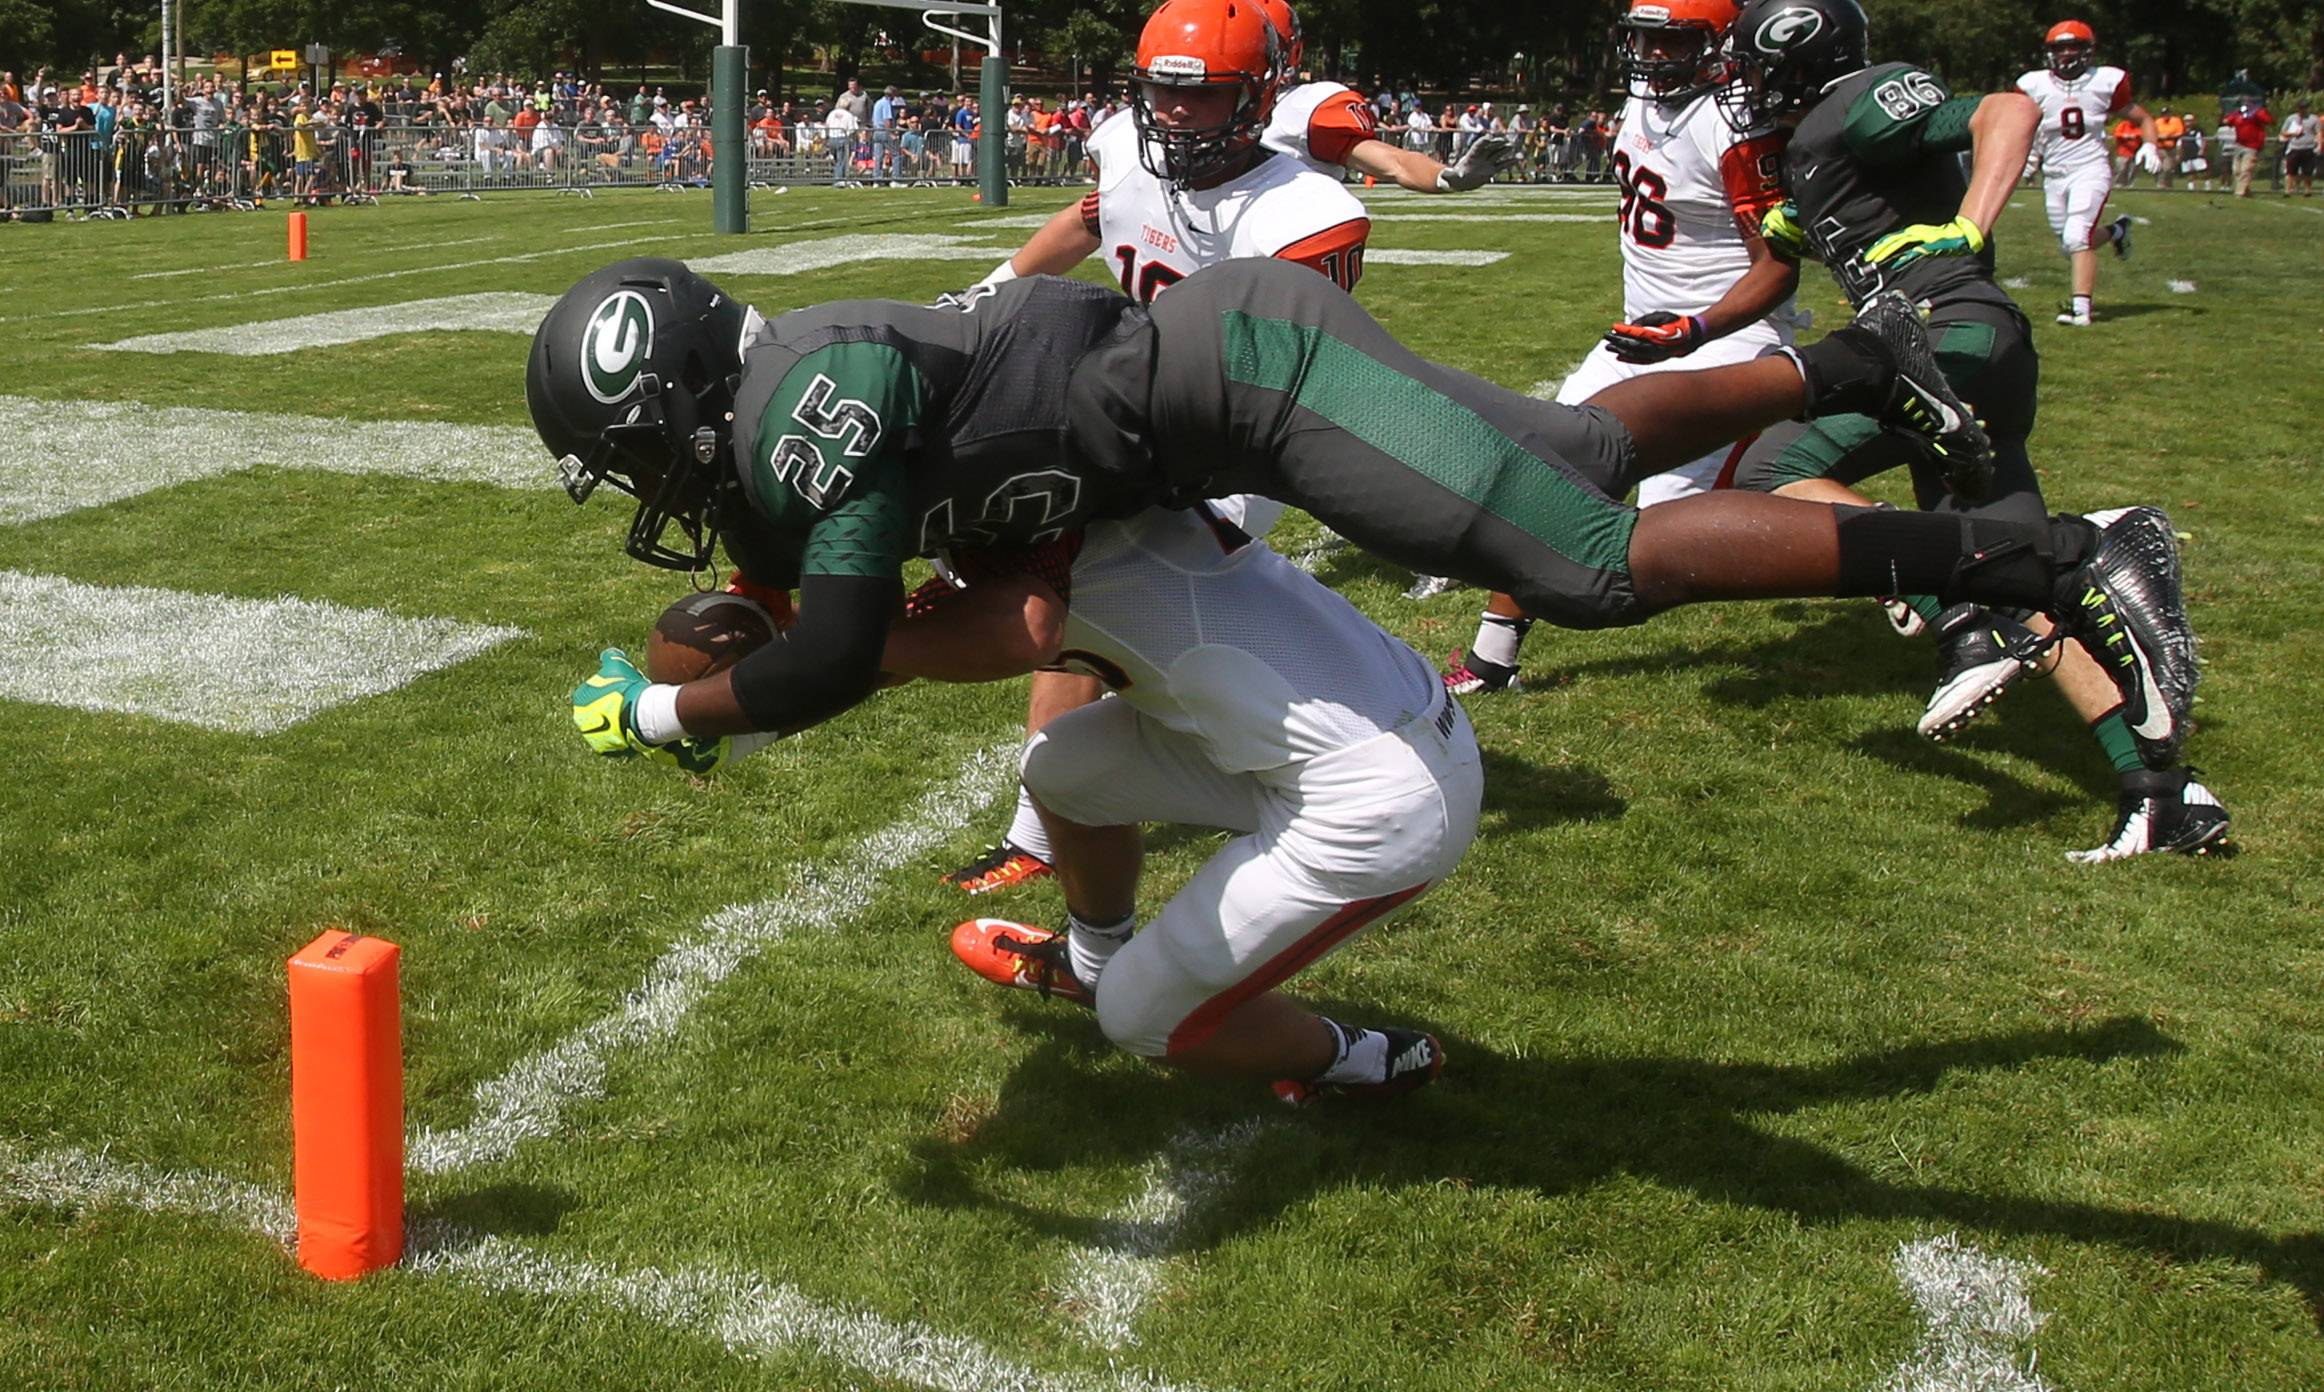 Glenbard West's Donahvon Vaughn is upended by Wheaton Warrenville South's Jake Kyllonen at the one foot line during first half action at Duchon Field.